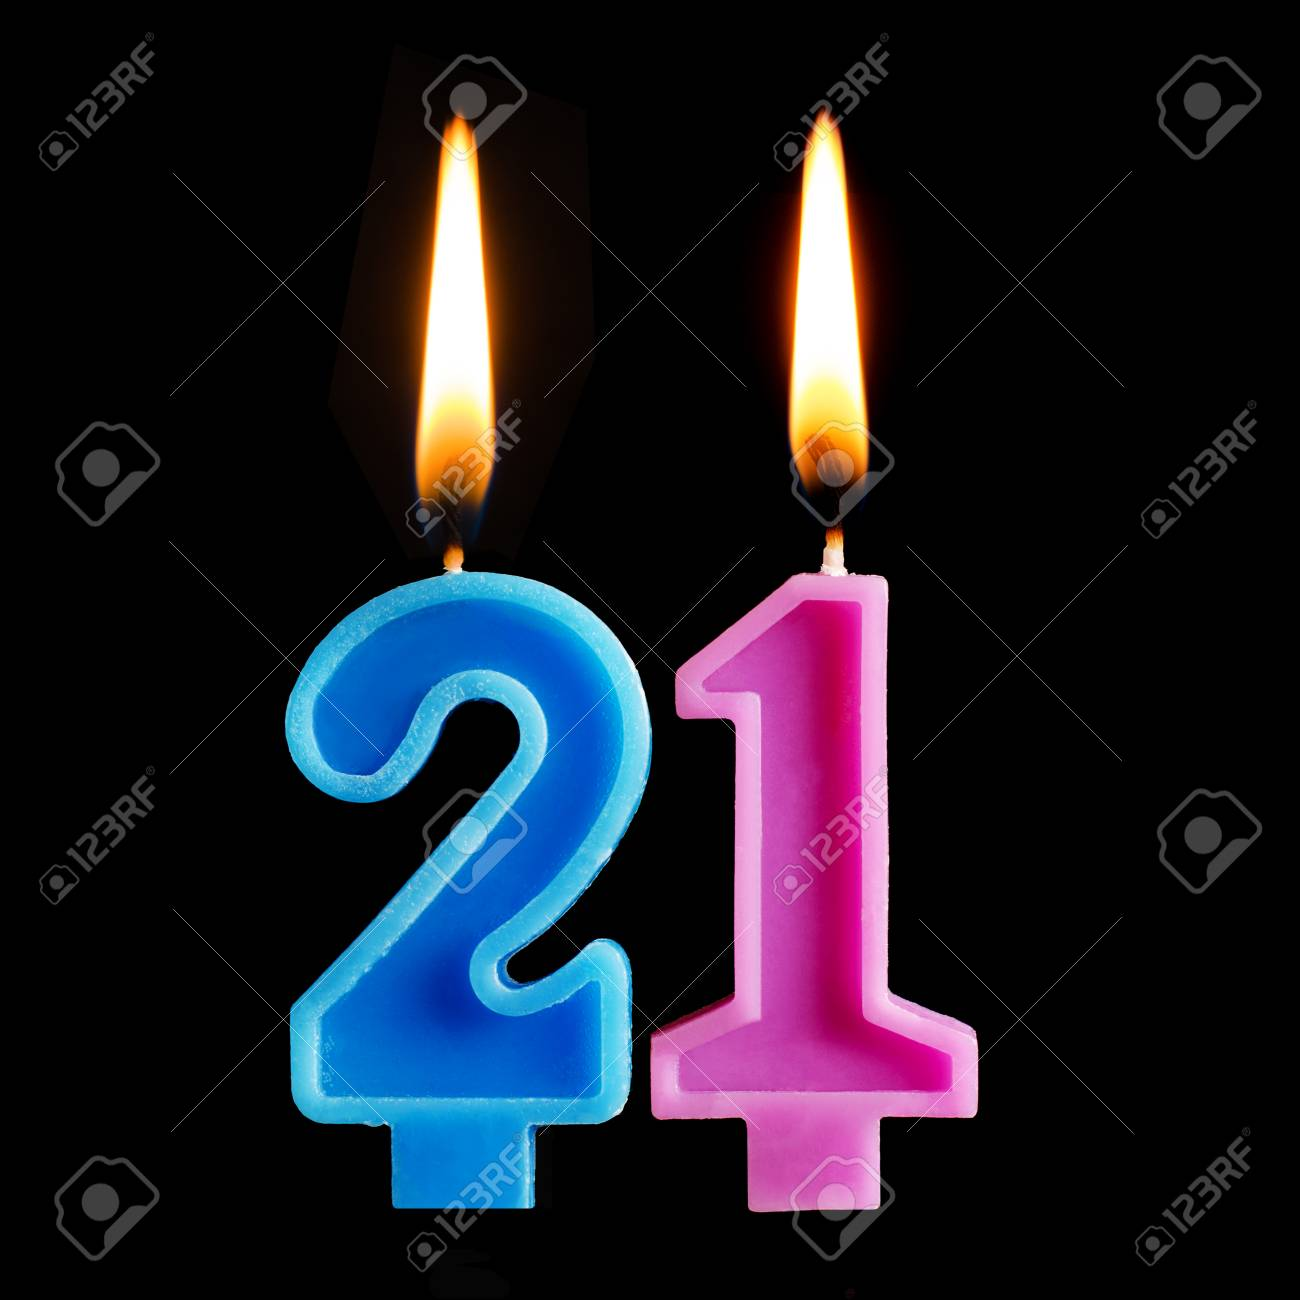 Burning Birthday Candles In The Form Of 21 Twenty One For Cake Stock Photo Picture And Royalty Free Image Image 100666274